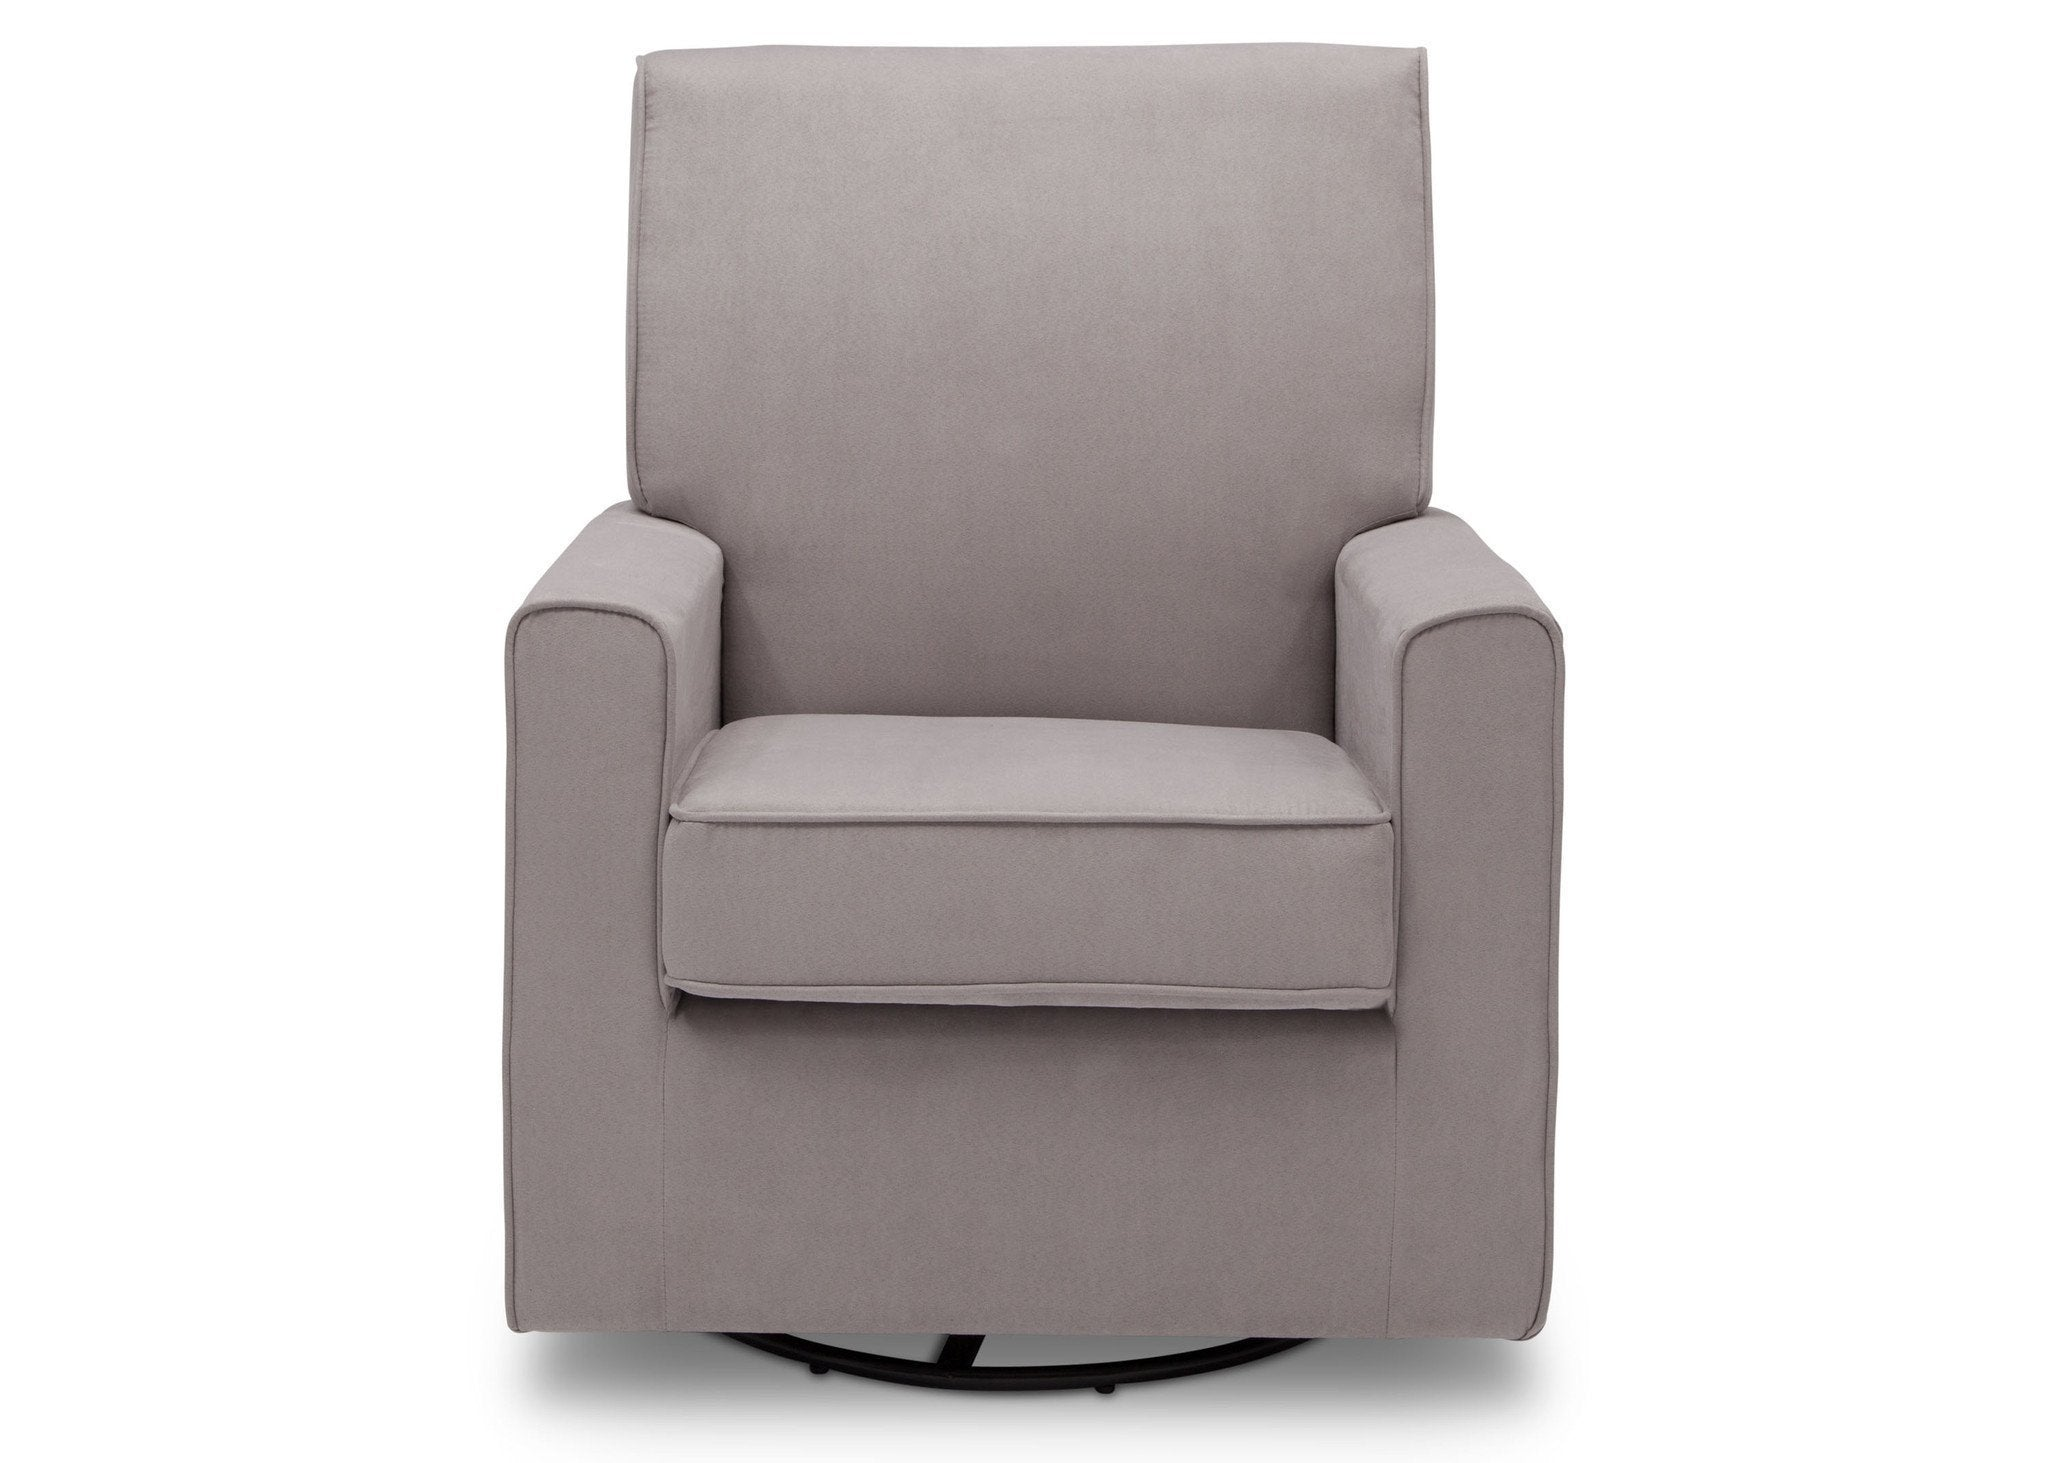 Delta Children Dove Grey (034) Ava Upholstered Glider Front View b2b